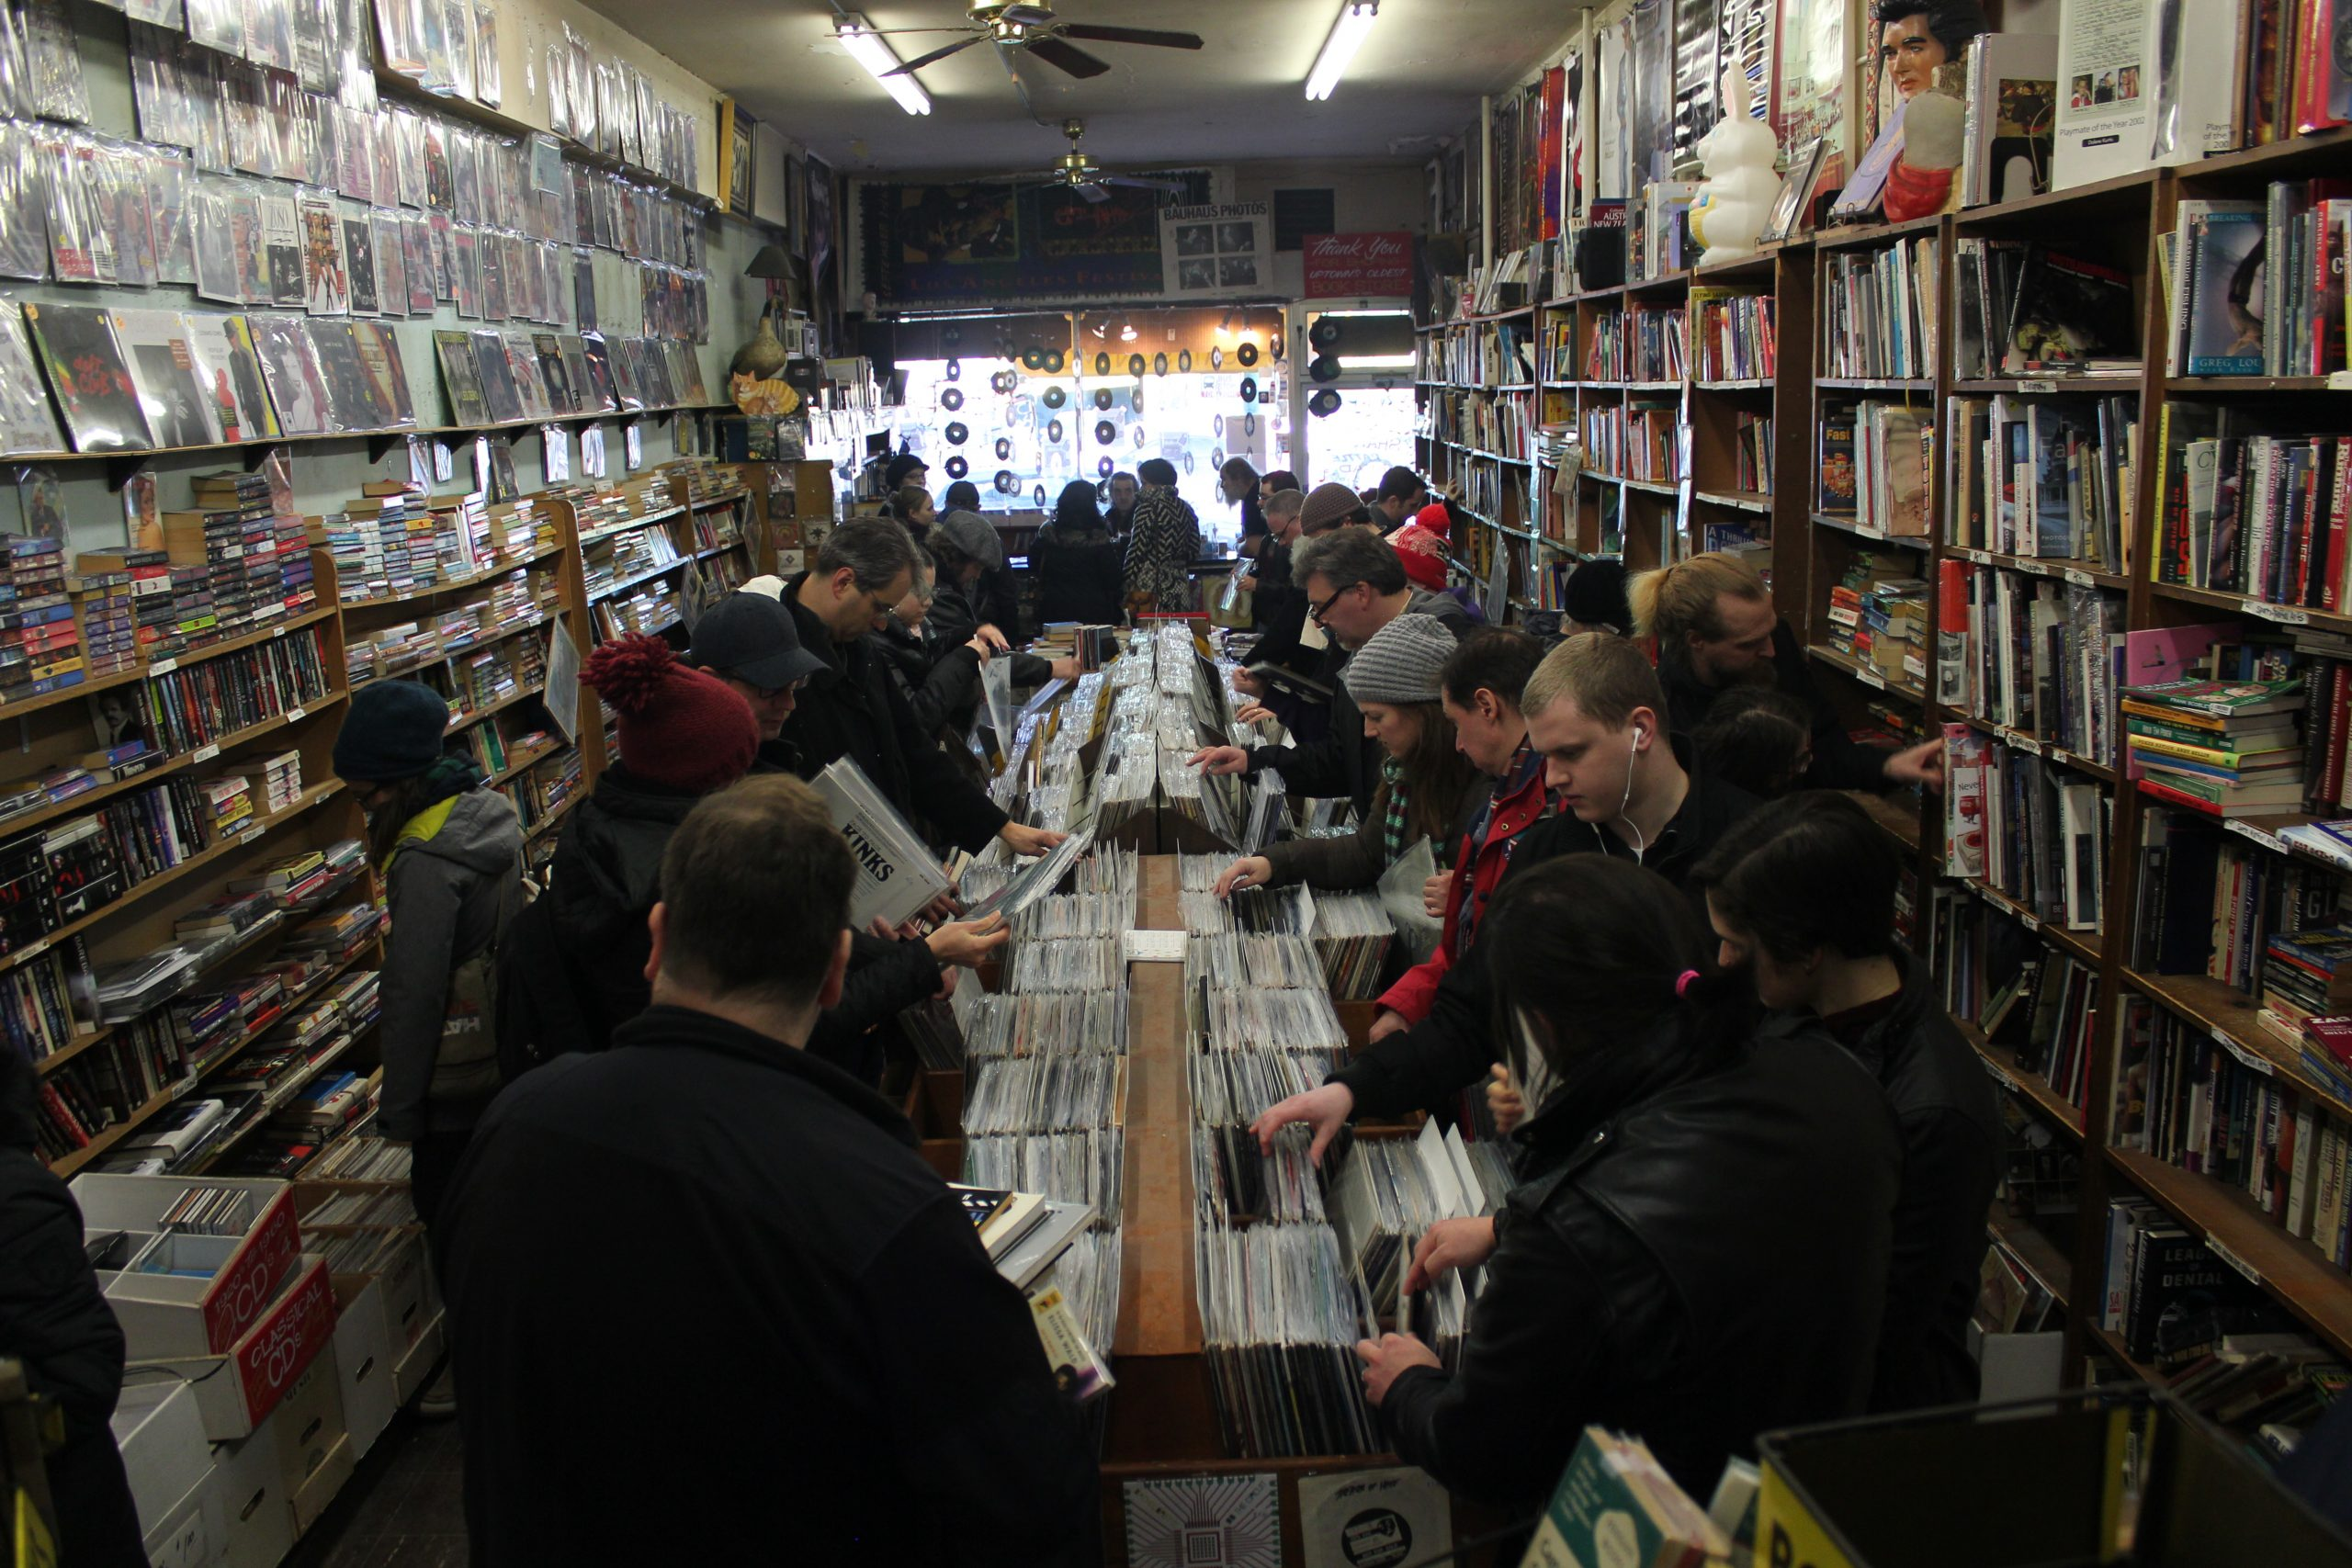 A seemingly endless stream of customers browse the shop's stacks of vinyl, books, CDs, old magazines, band posters, and random junk.